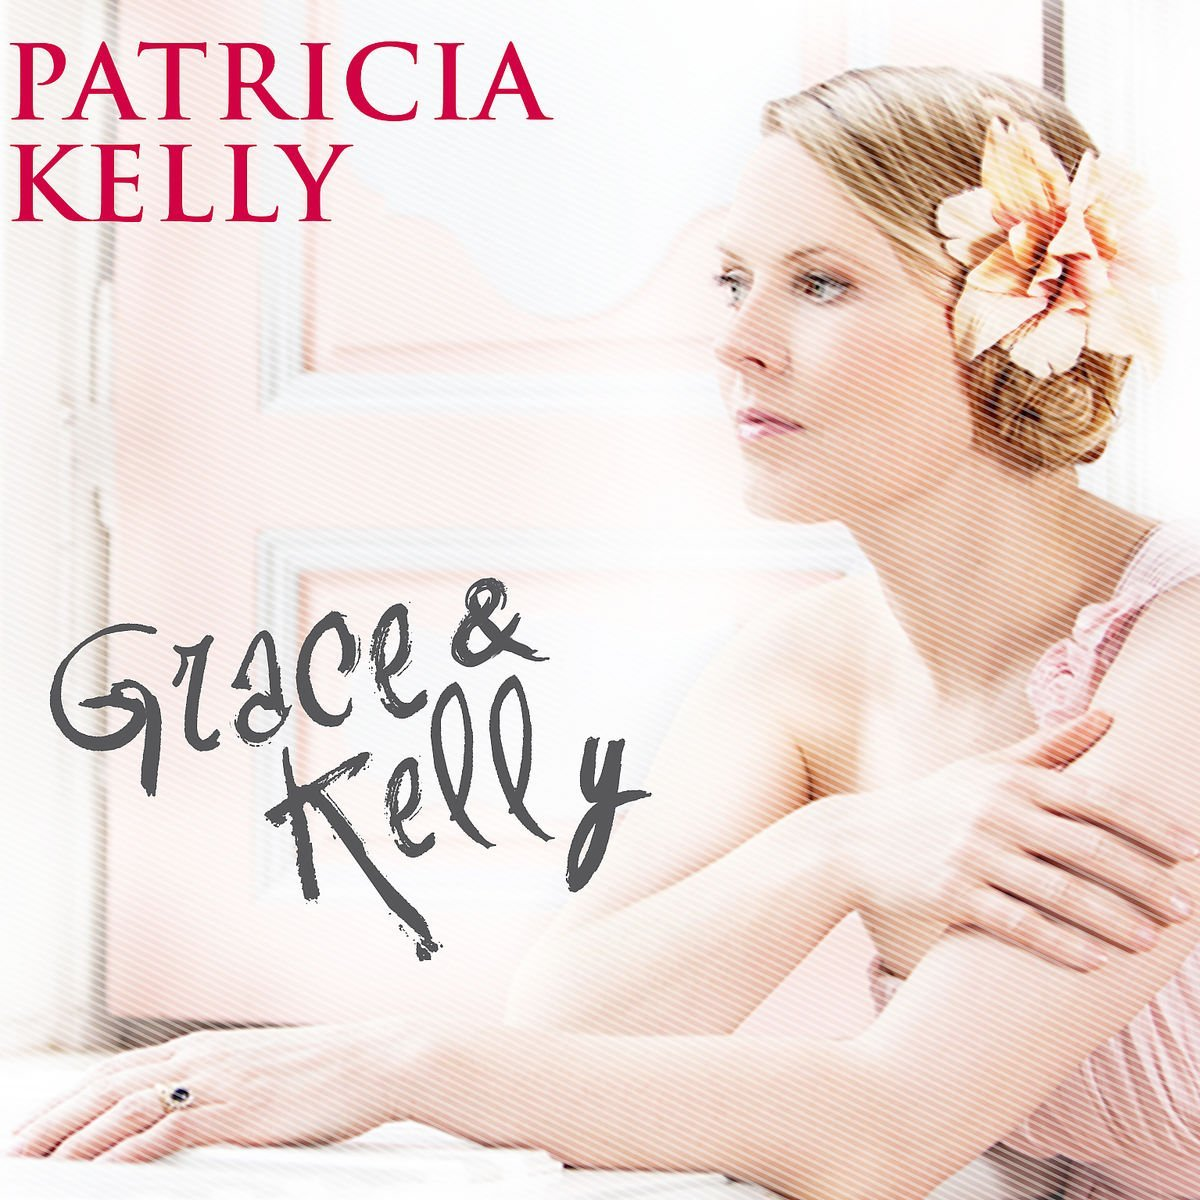 patriciakelly-gracekelly